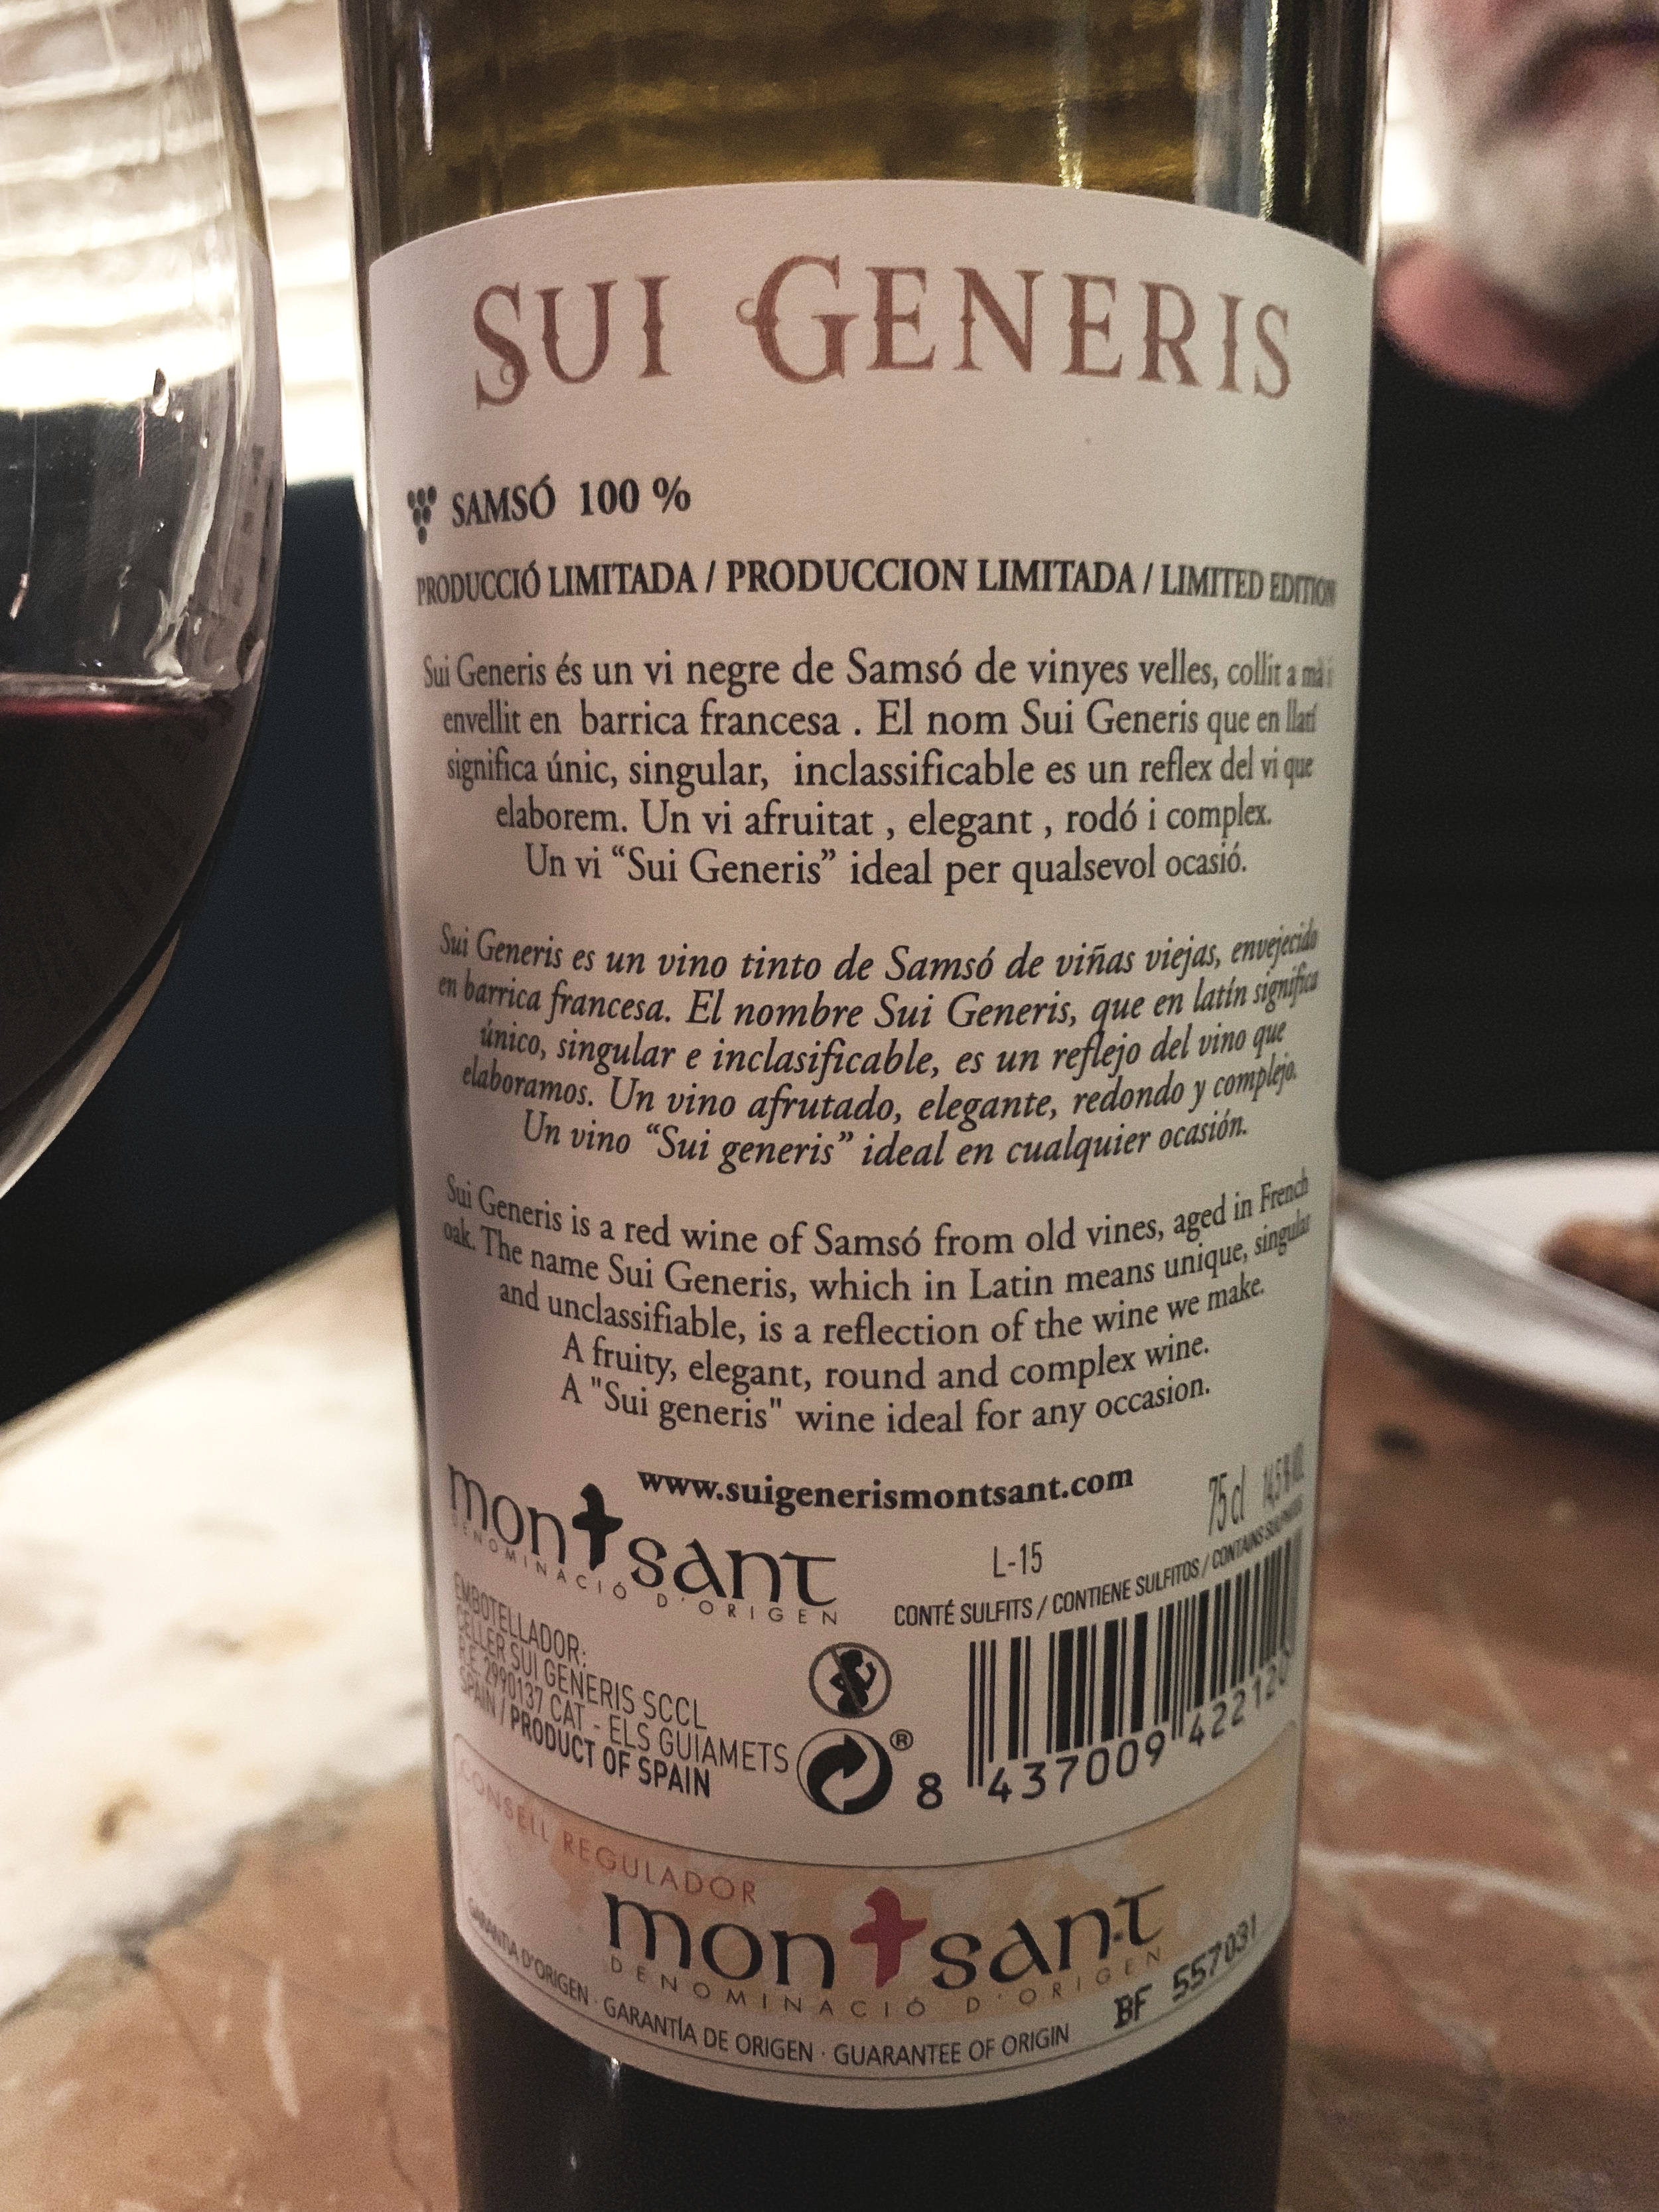 A wine from Priorat's neighbor, Montsant, using the word Samsó. It was tasty, by the way.